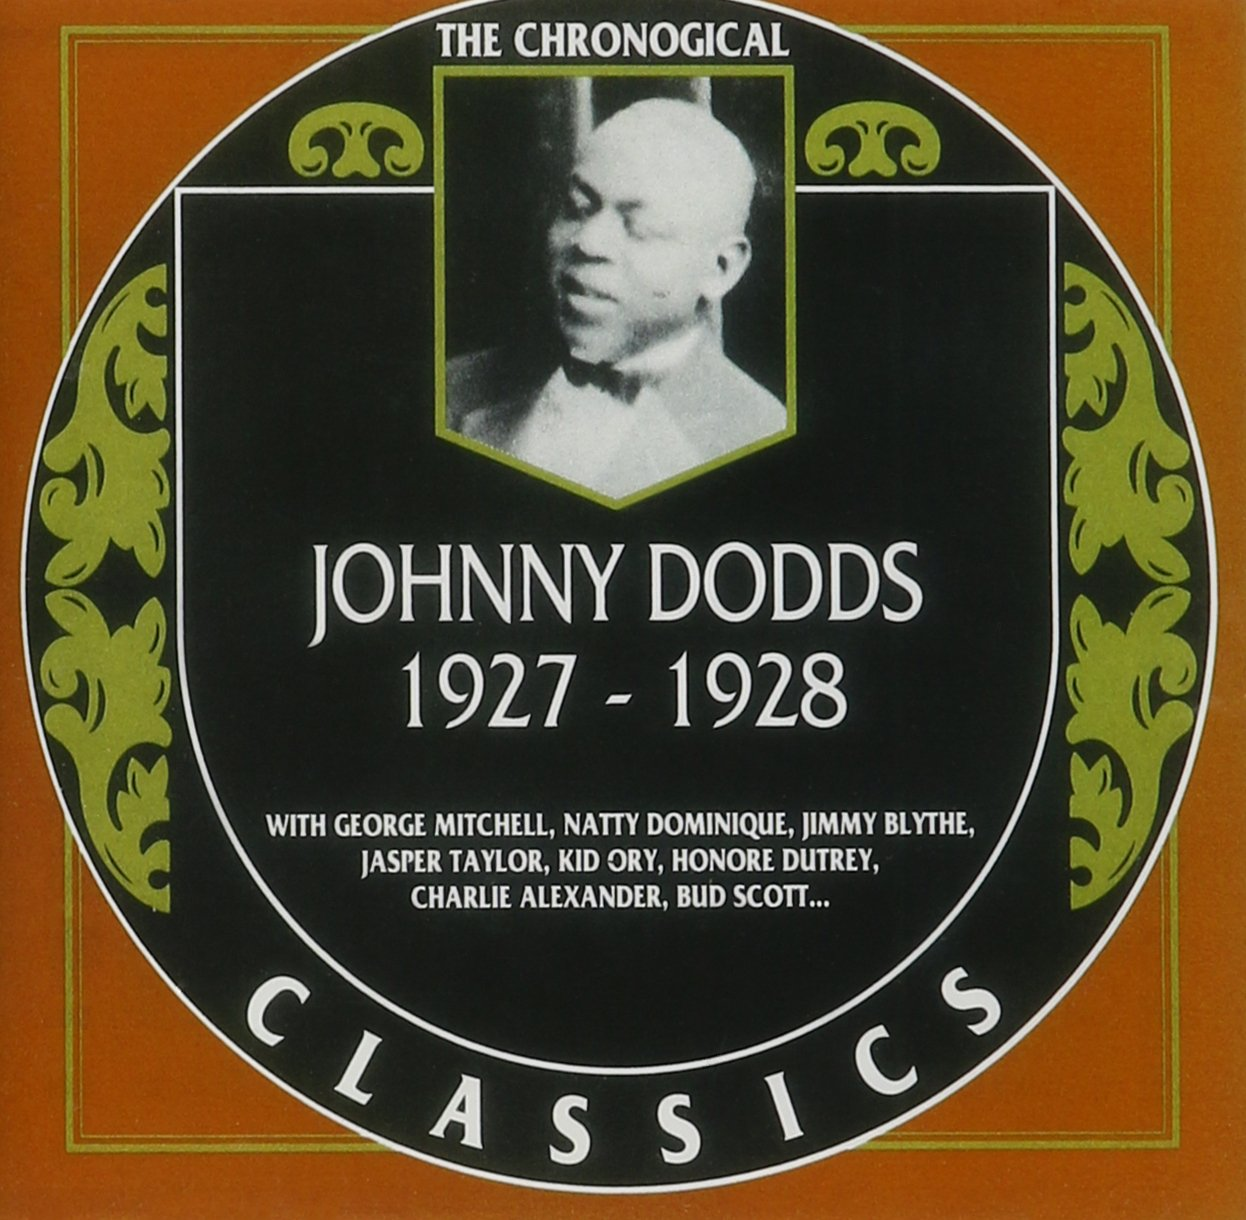 Johnny Dodds: The 1927-28 trust Max 56% OFF Classics Chronological